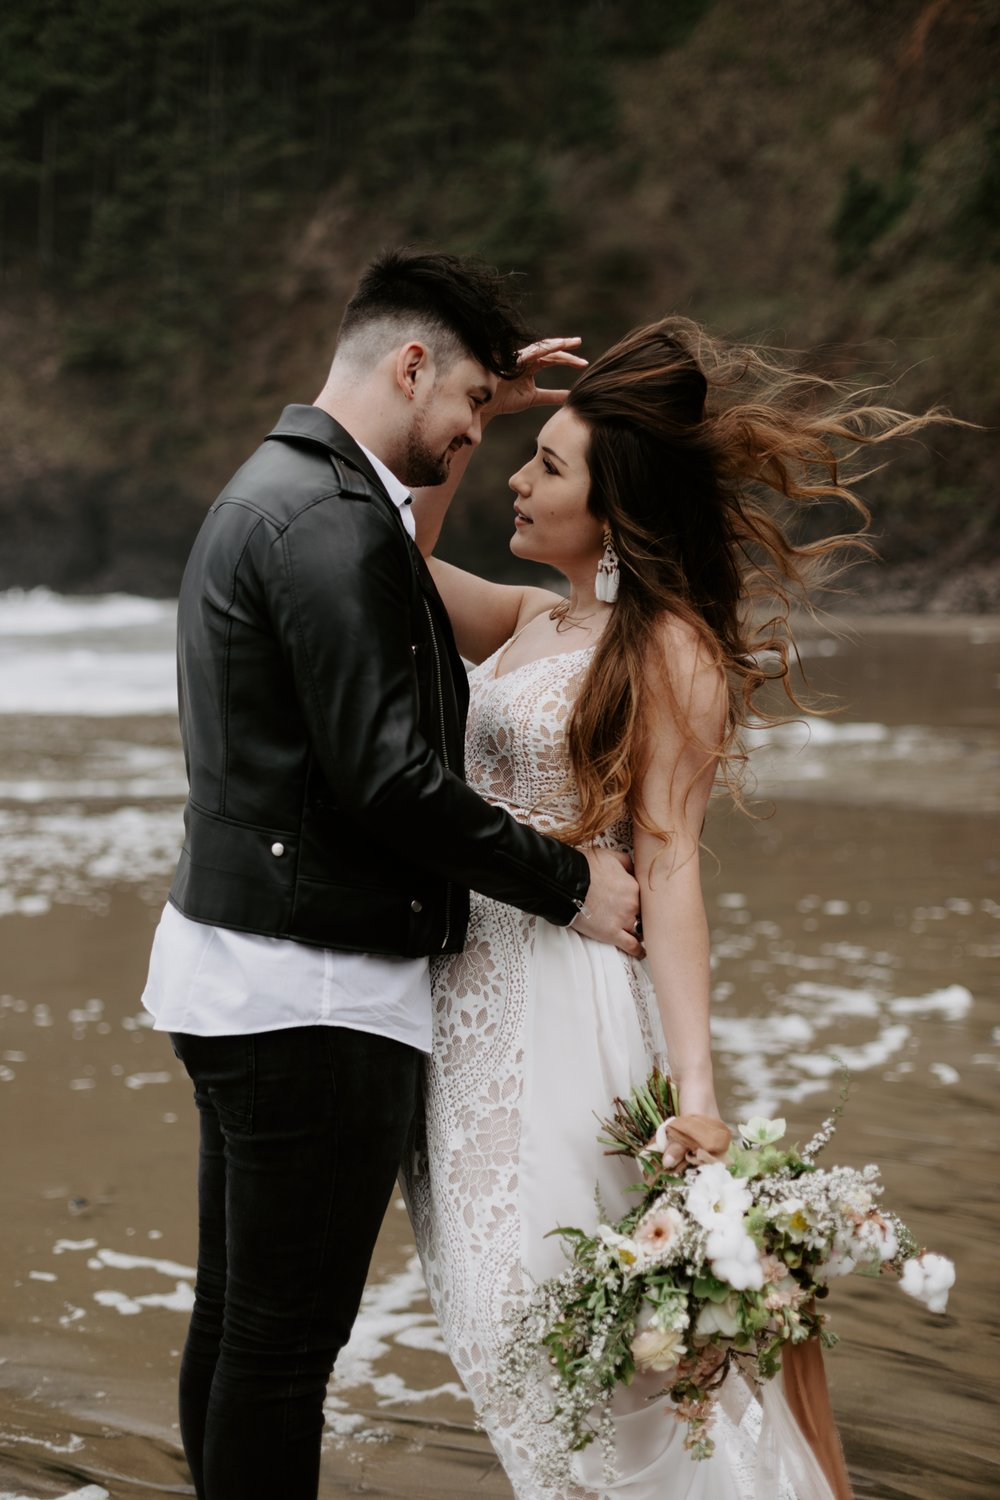 intimate-oregon-coast-elopement-2018-04-26_0005.jpg